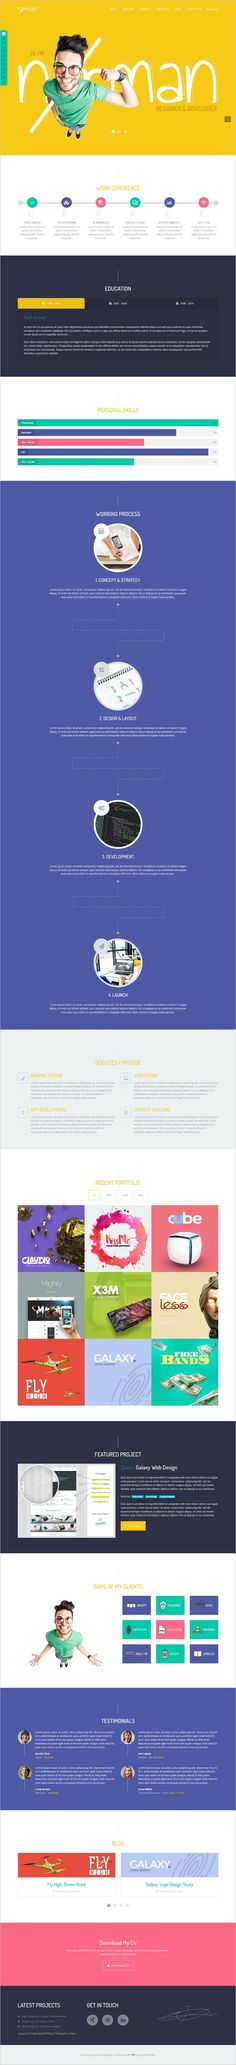 Experience - Multi-Concept CV Resume WordPress Theme Wordpress - resume web template